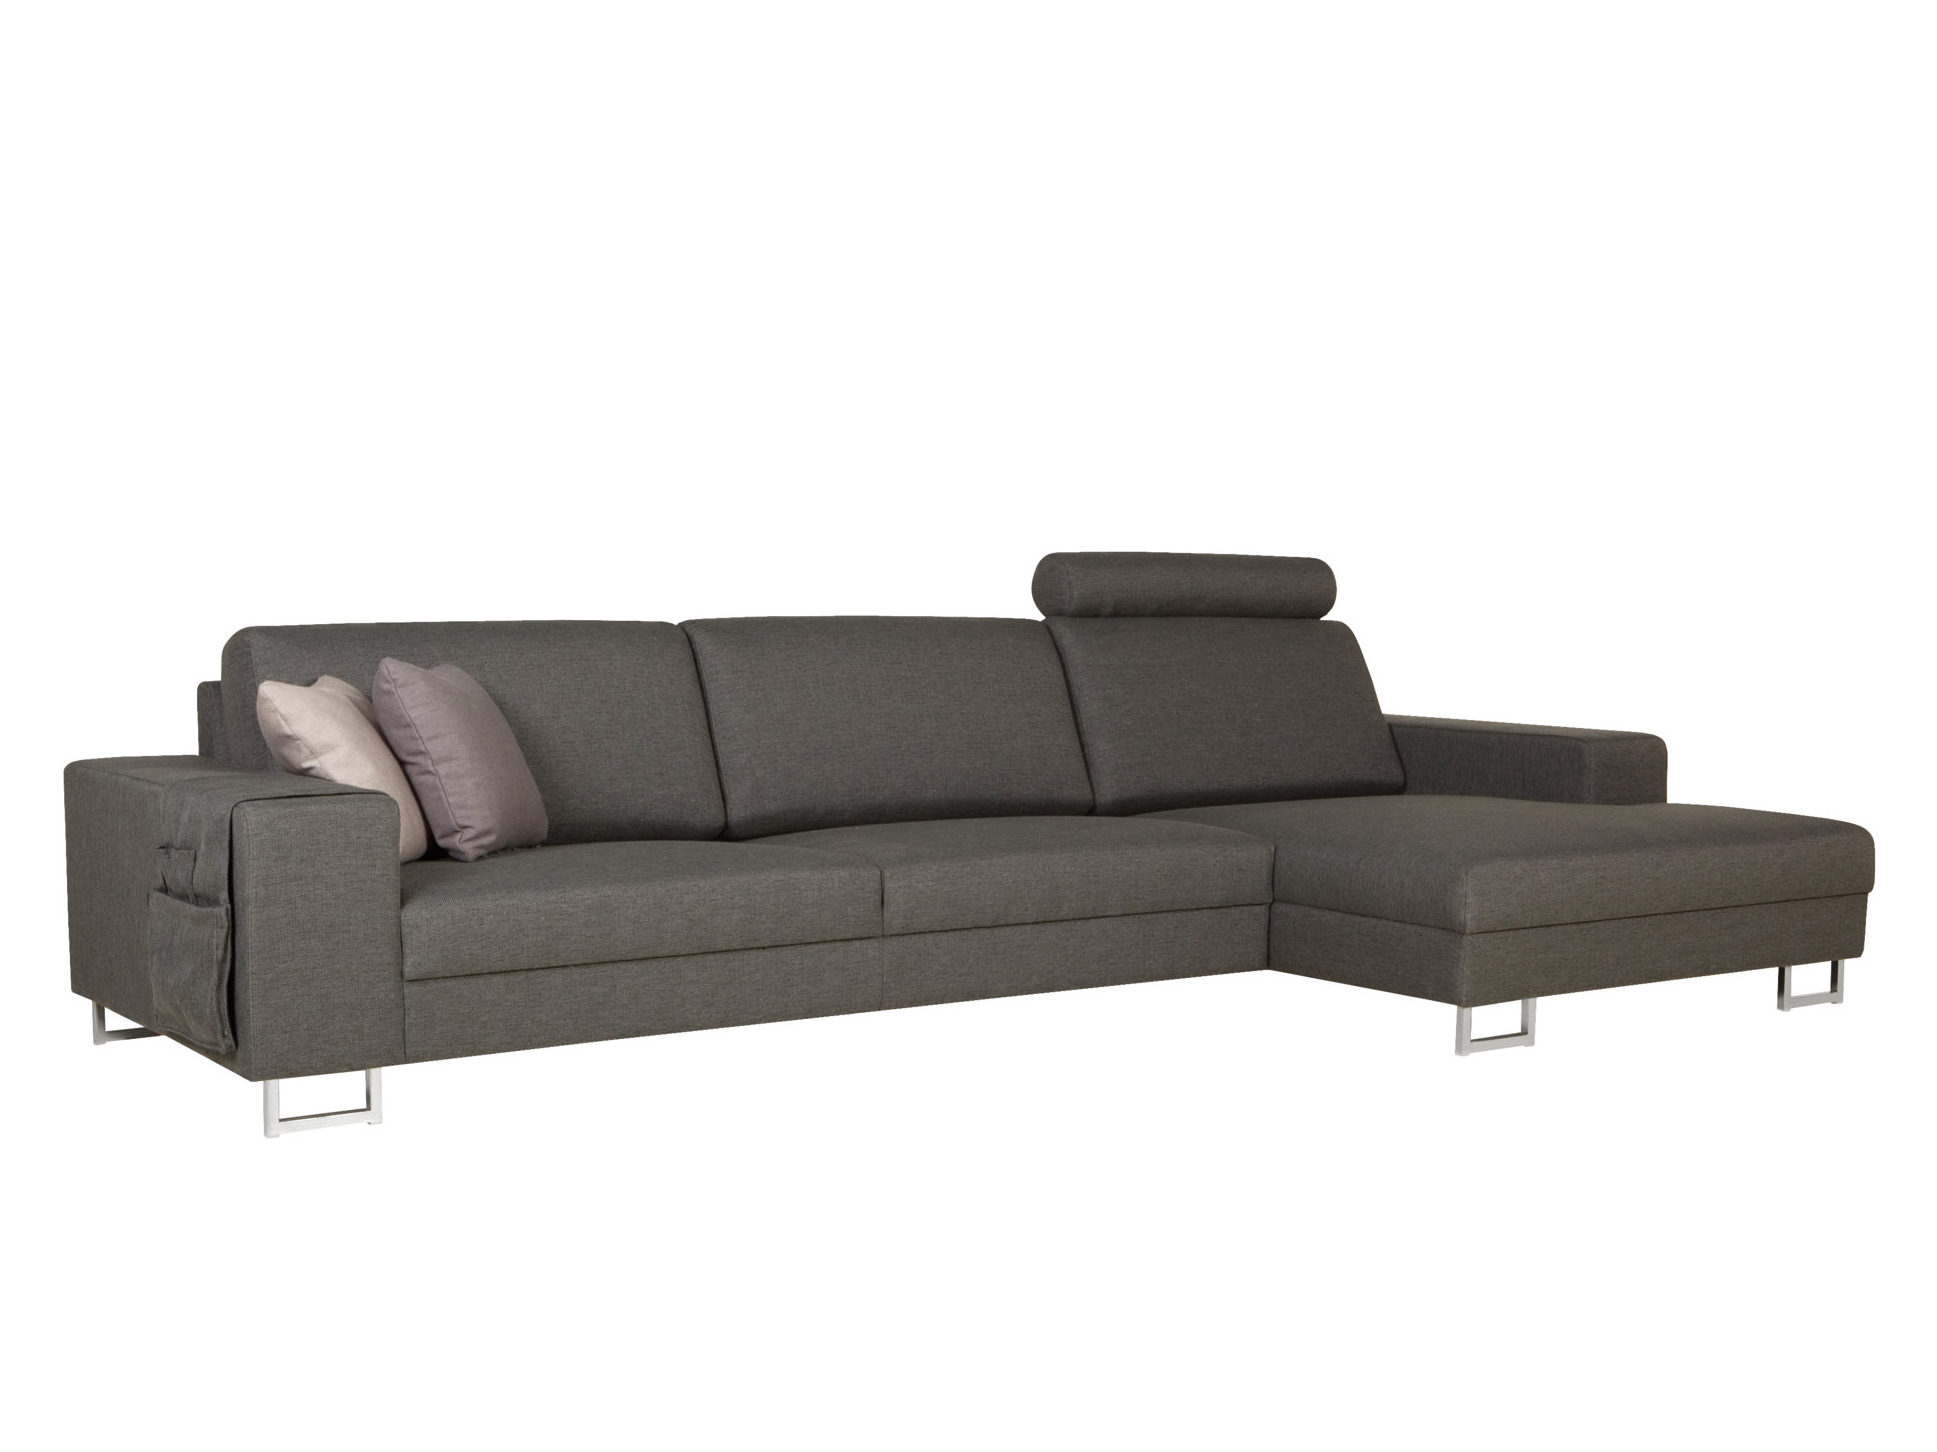 four seat sofa with chaise small rooms ideas quattro longue collection by sits